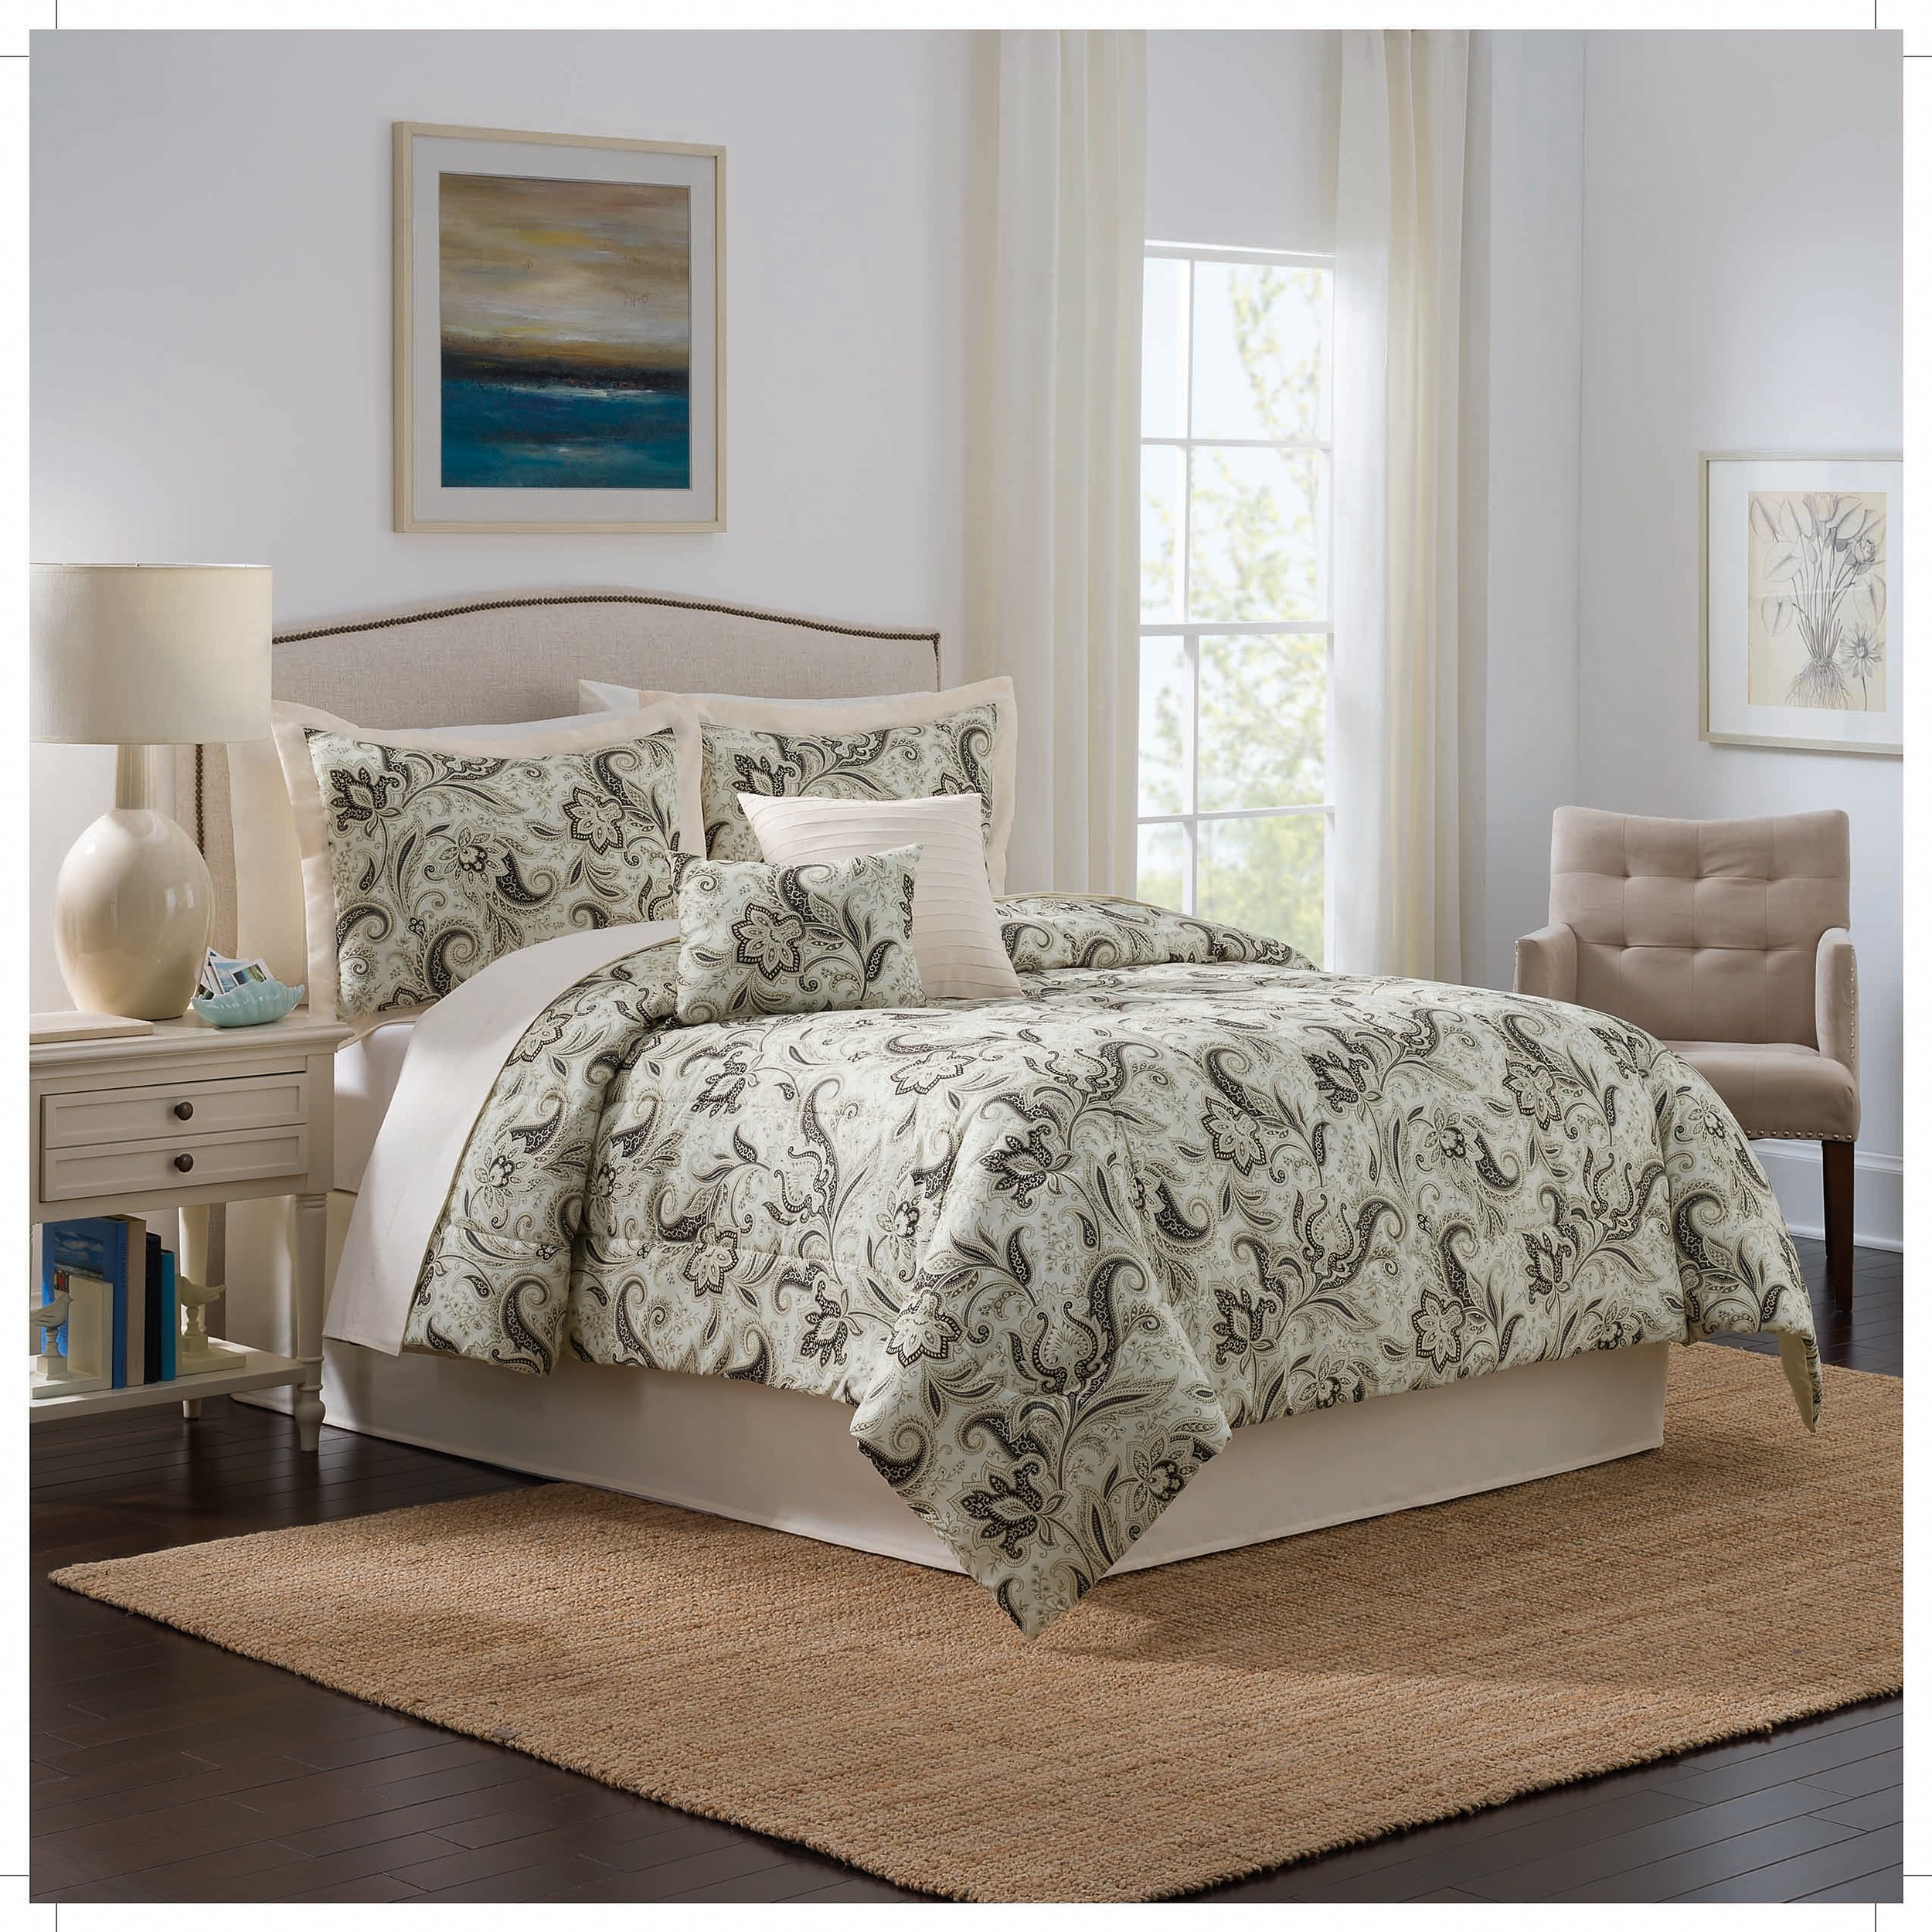 of black to haven discount covers pics double queen appealing king dark size duvet sets amusing home and set apply your hillside with rustic sale white youramusing cover for cream plaid red combine comforter quilt flannelette decor canada bedding duvets flannel full